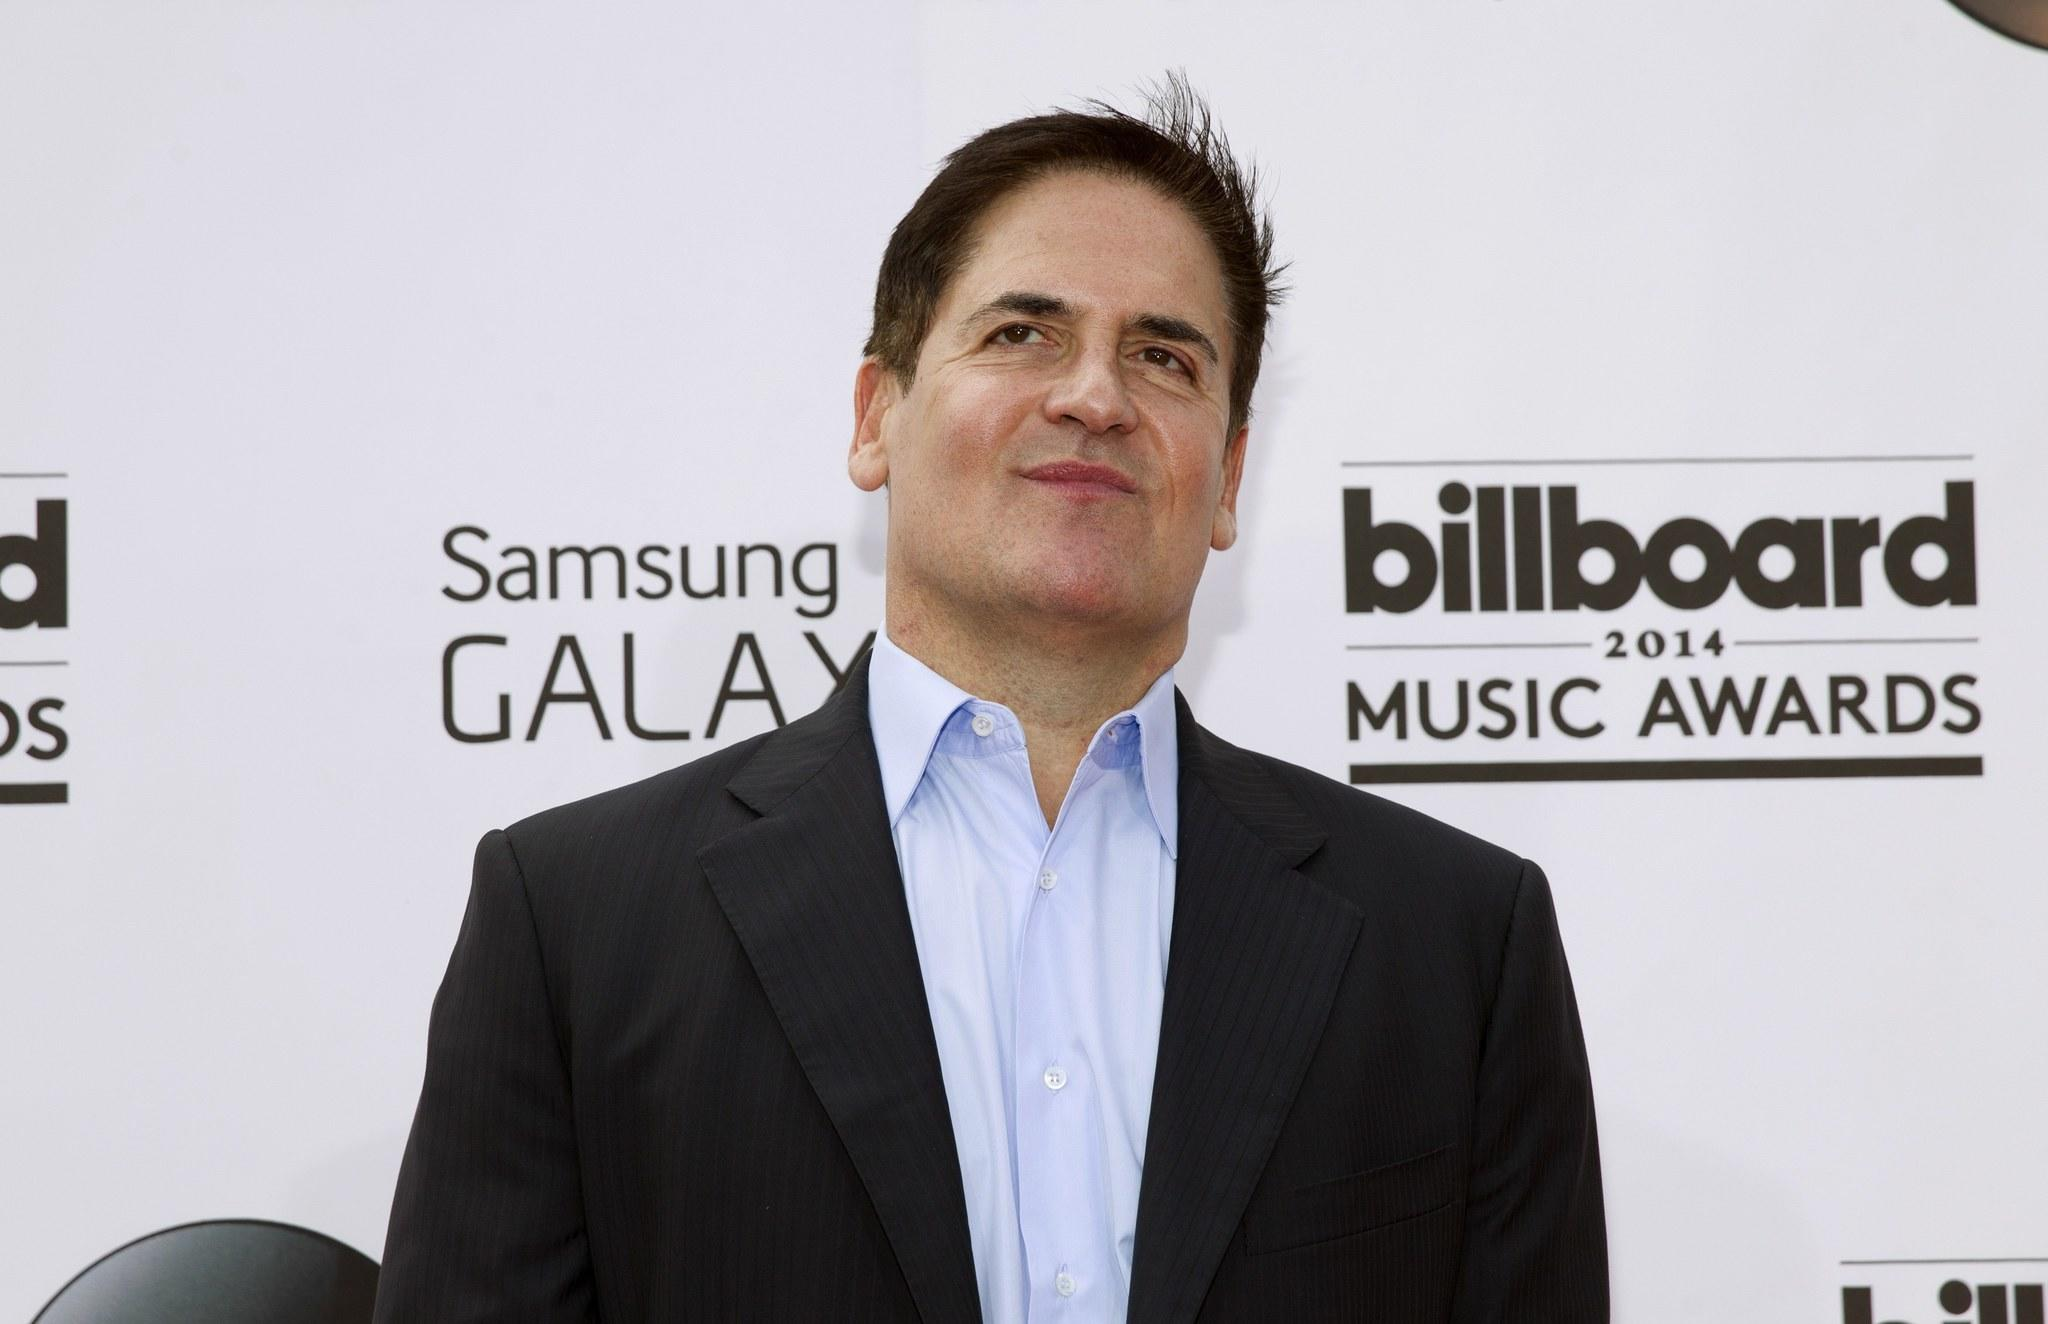 Billionaire Mark Cuban, owner of the Dallas Mavericks, has stepped into the fray as discussions of intolerance and free speech have taken center stage in sports.